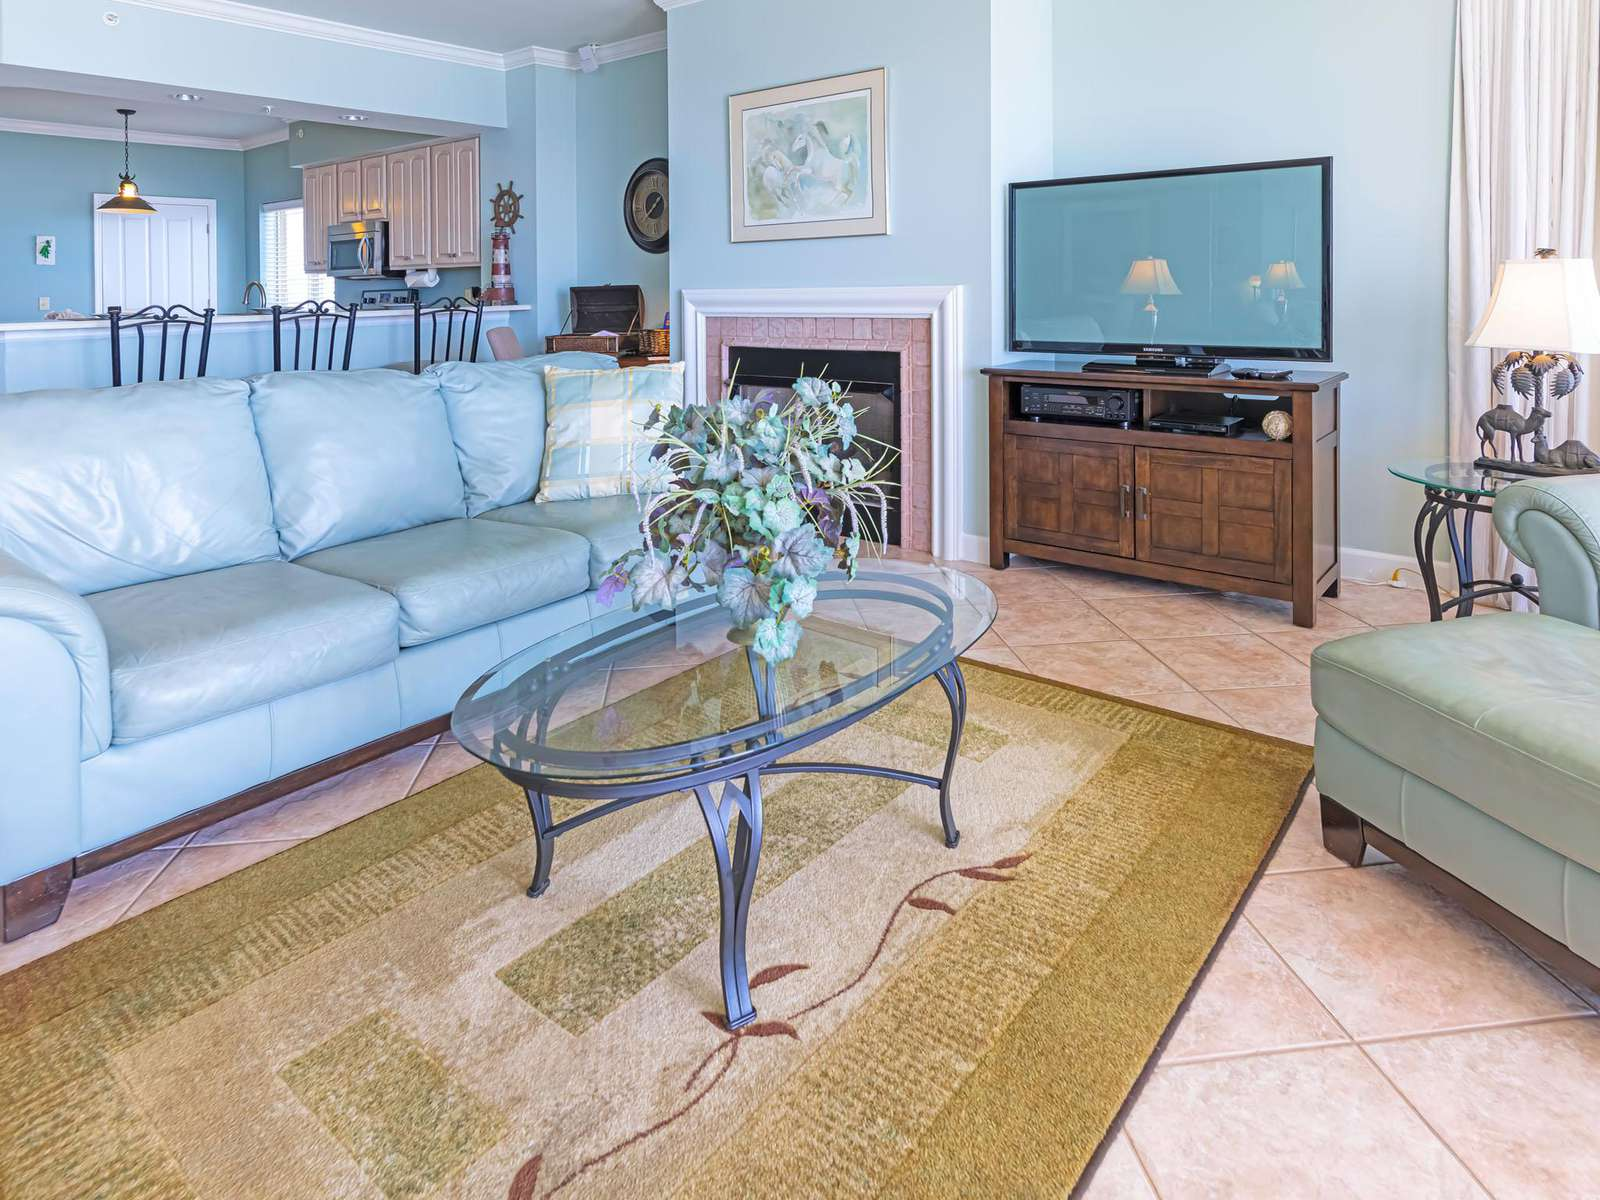 Comfy furnishings and amenities throughout!